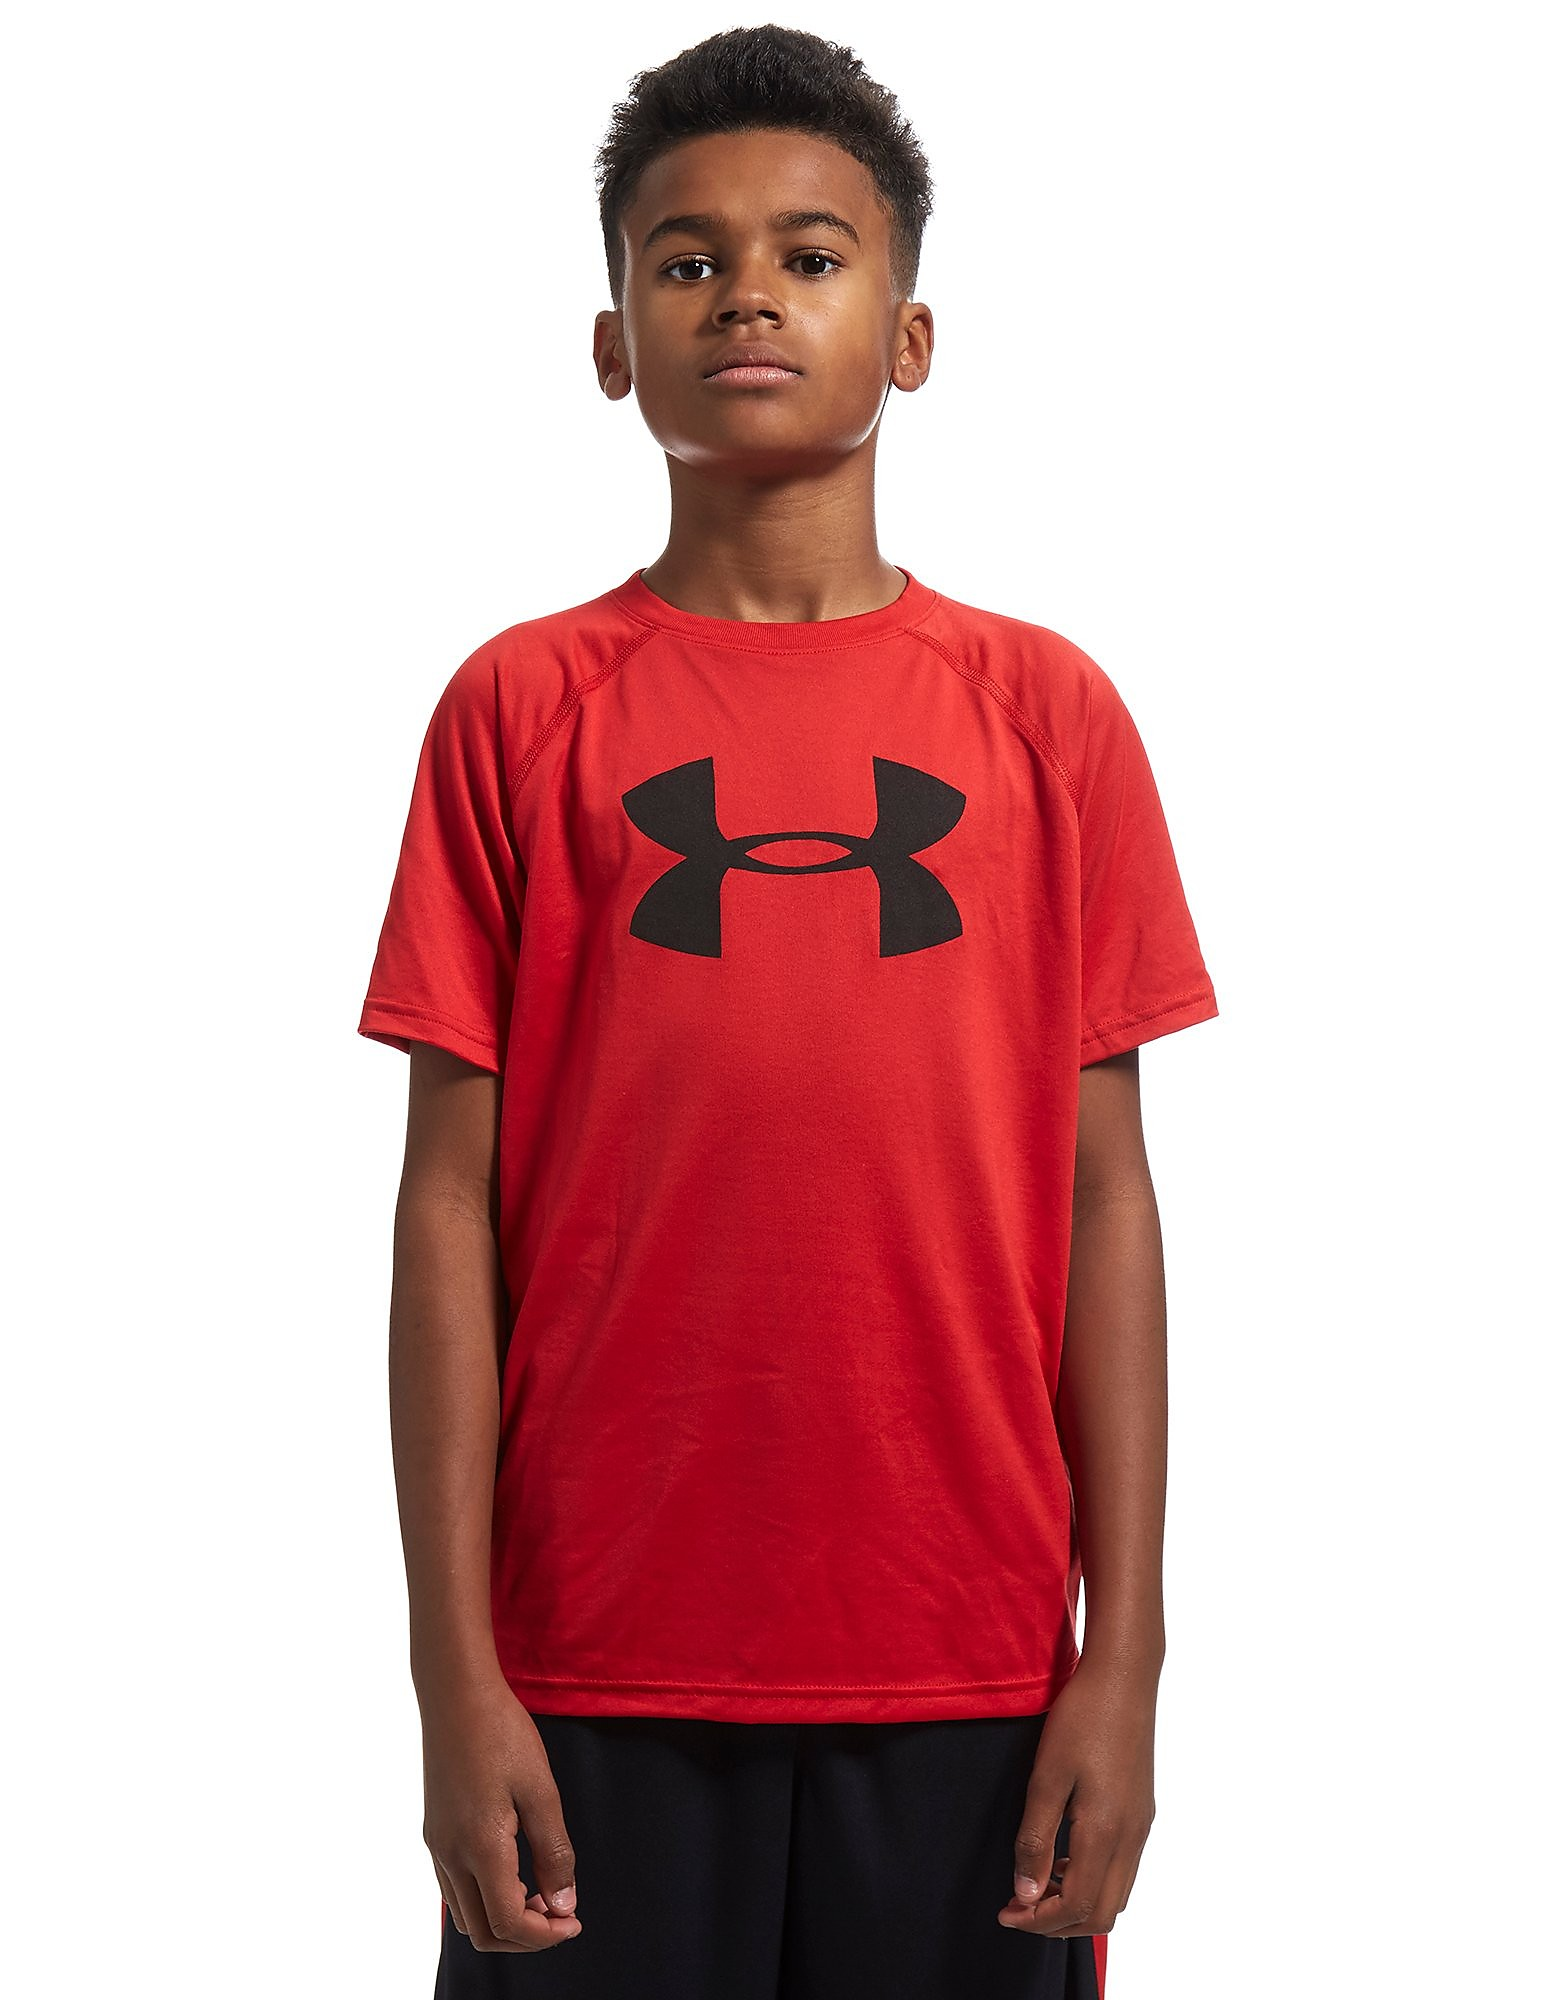 Under Armour Tech T-Shirt mit großem Logo